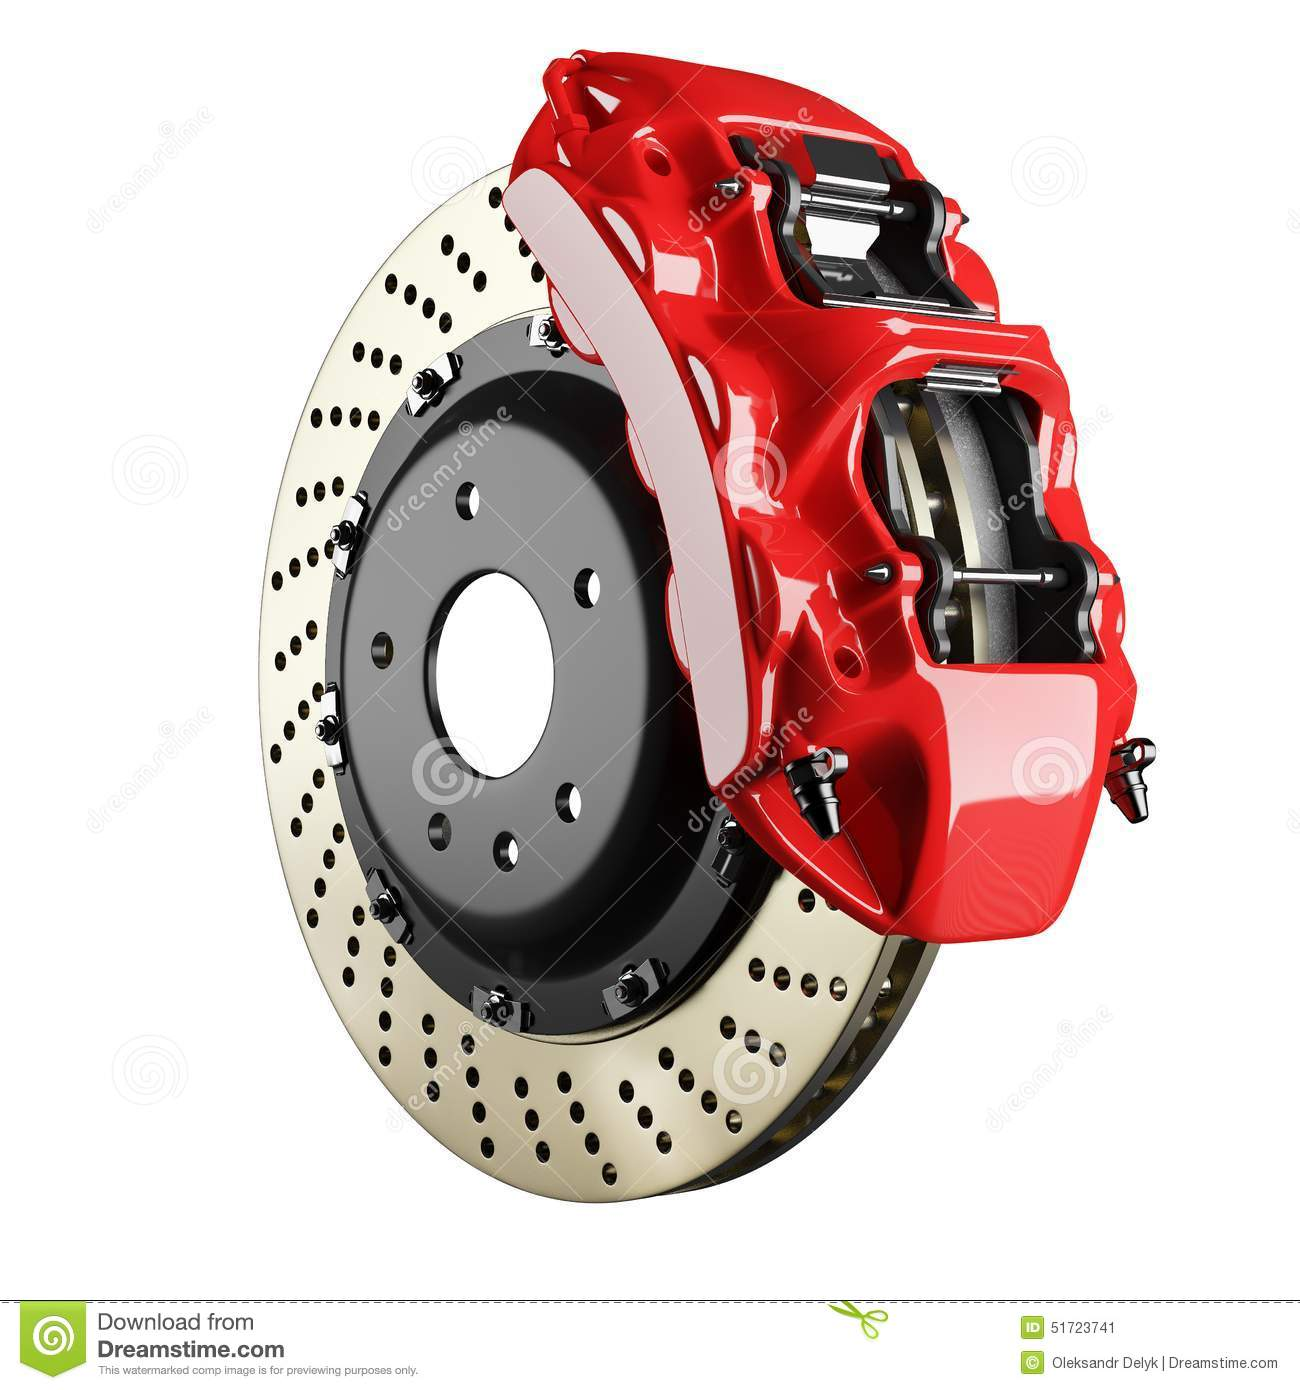 Vehicle Brake Parts : Automobile brake disk and red caliper stock illustration